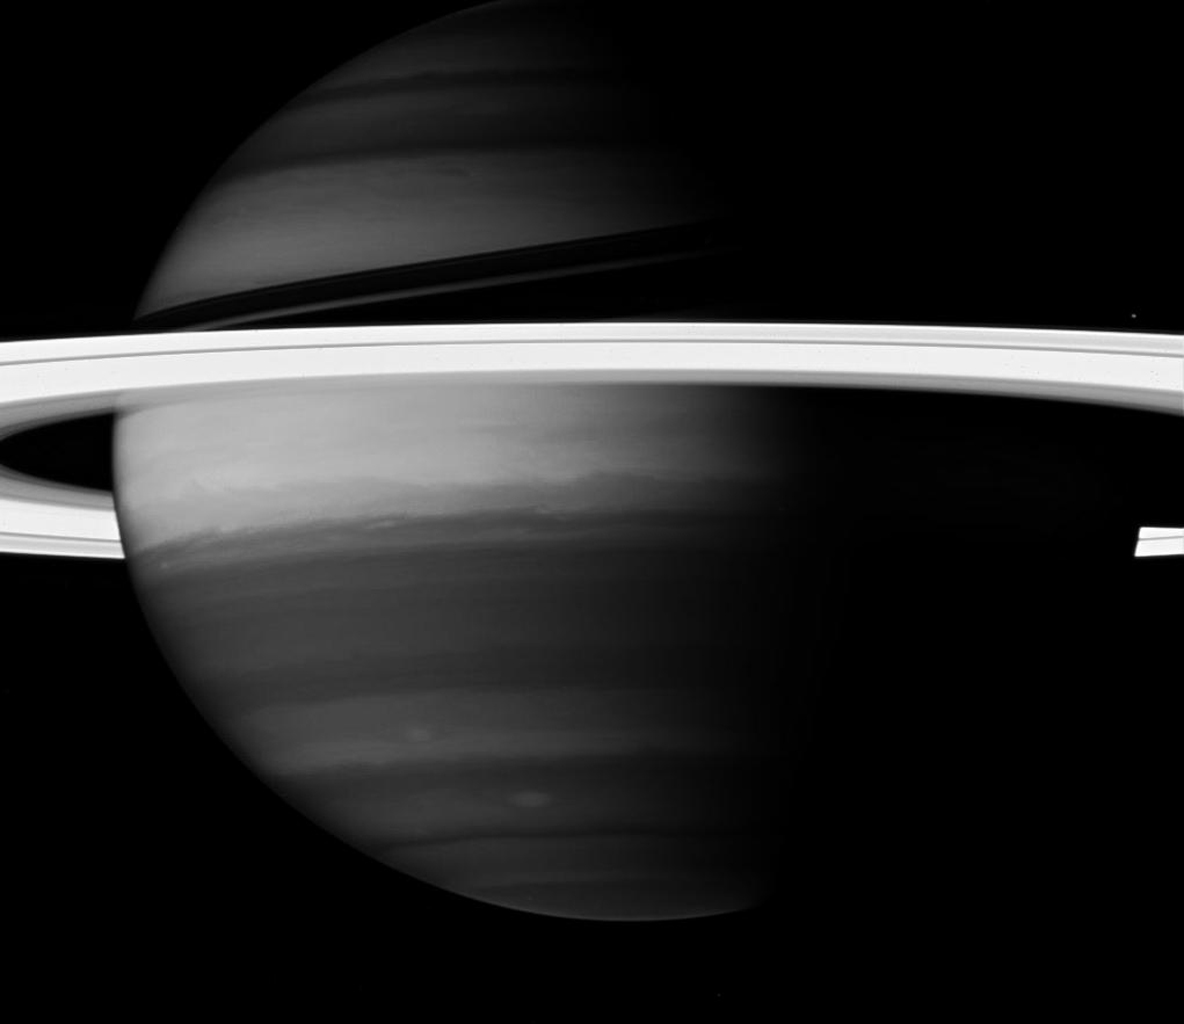 Saturn's rings create a brilliant halo around the turbulent giant planet. Here, NASA's Cassini spacecraft looks into Saturn's clouds using a spectral filter.